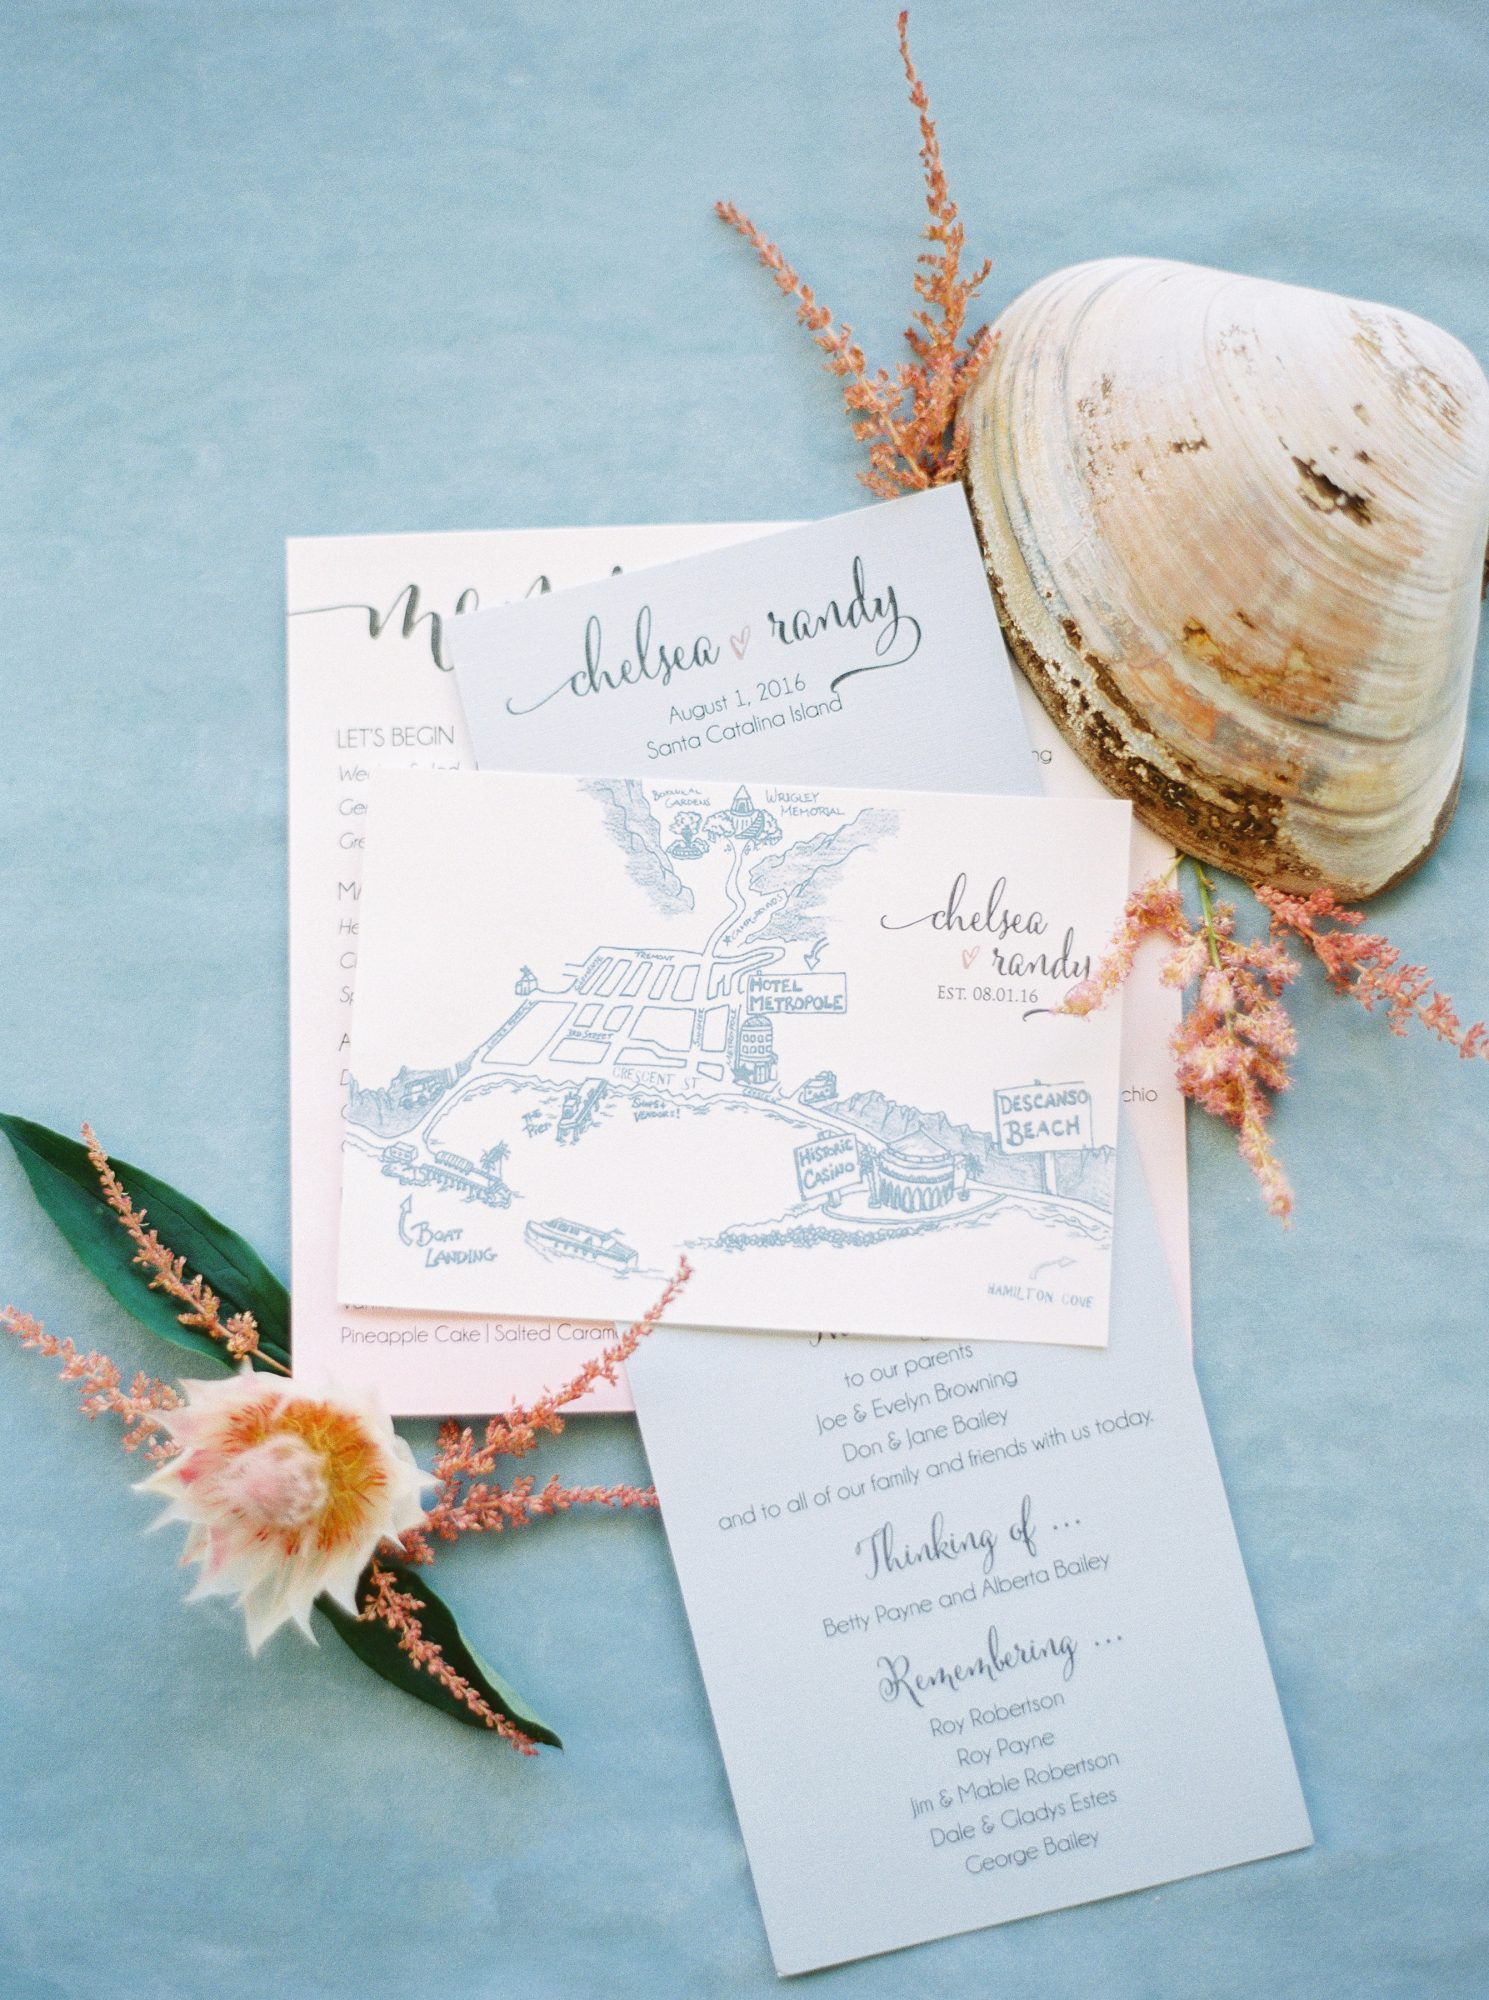 A blue illustration made this Celebrations in Paper stationery a lovely preview for its California beach wedding.